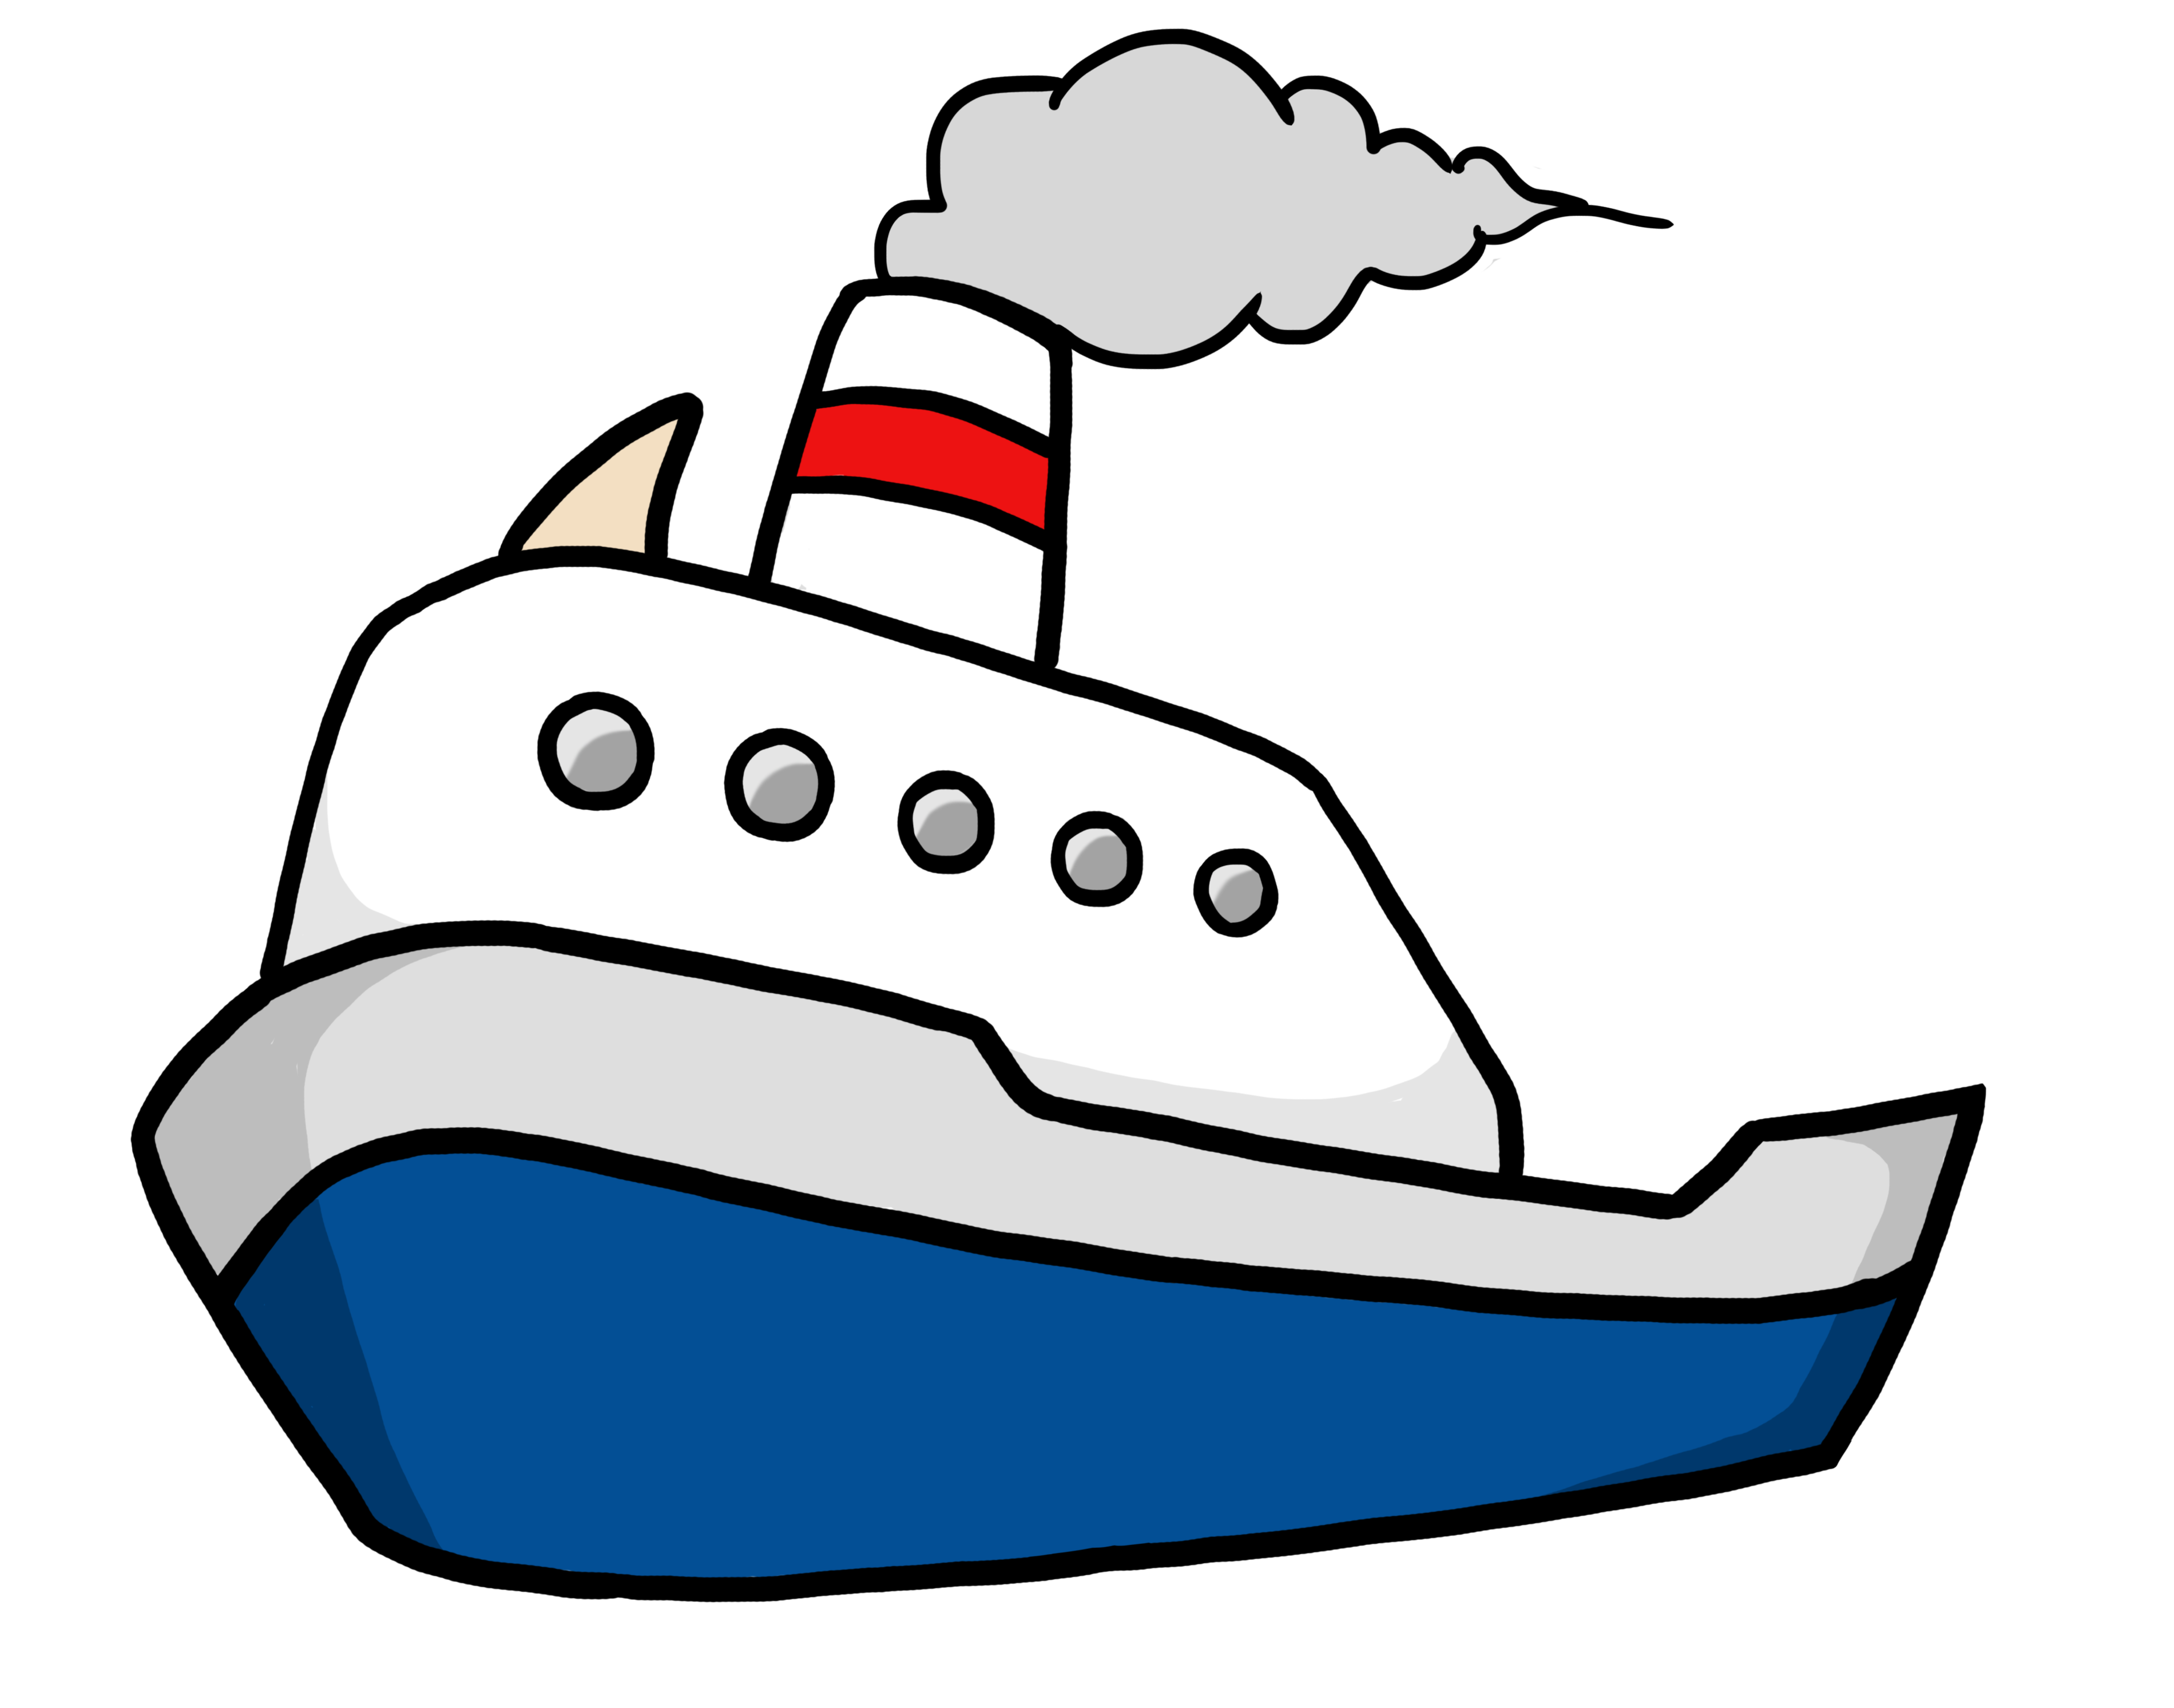 Cruise clipart animated, Cruise animated Transparent FREE for.